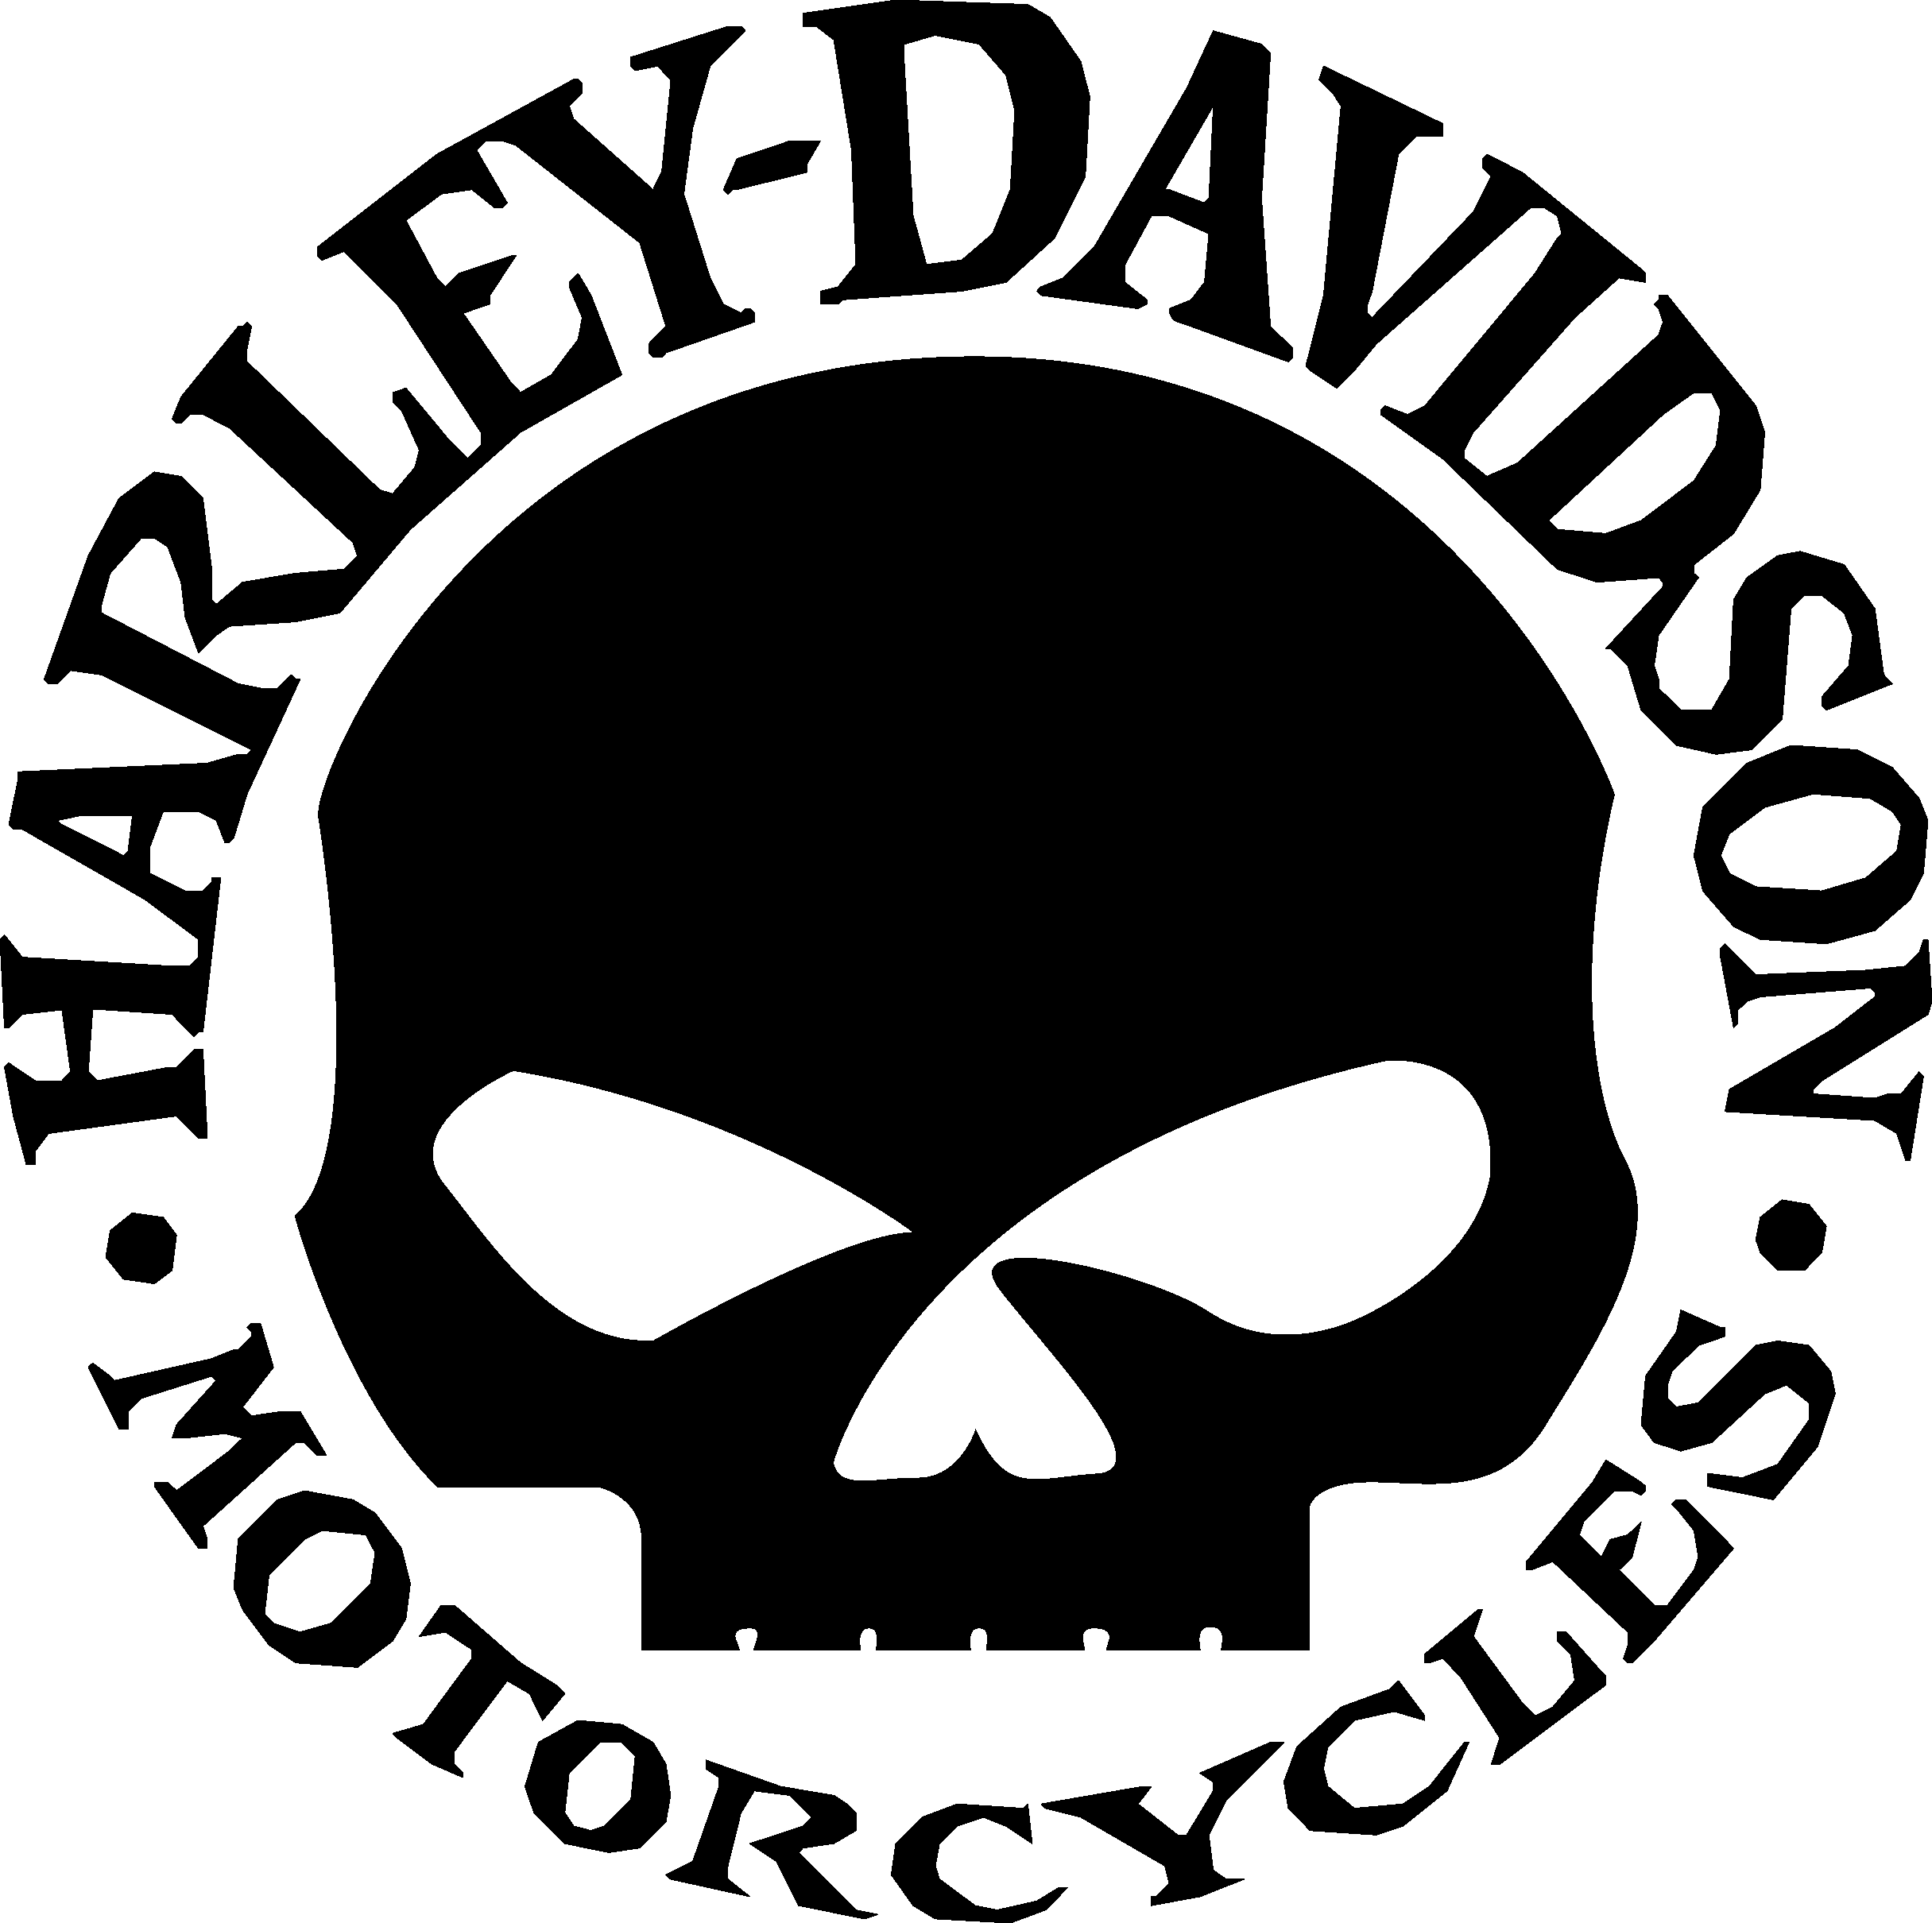 Willie G Skull logo